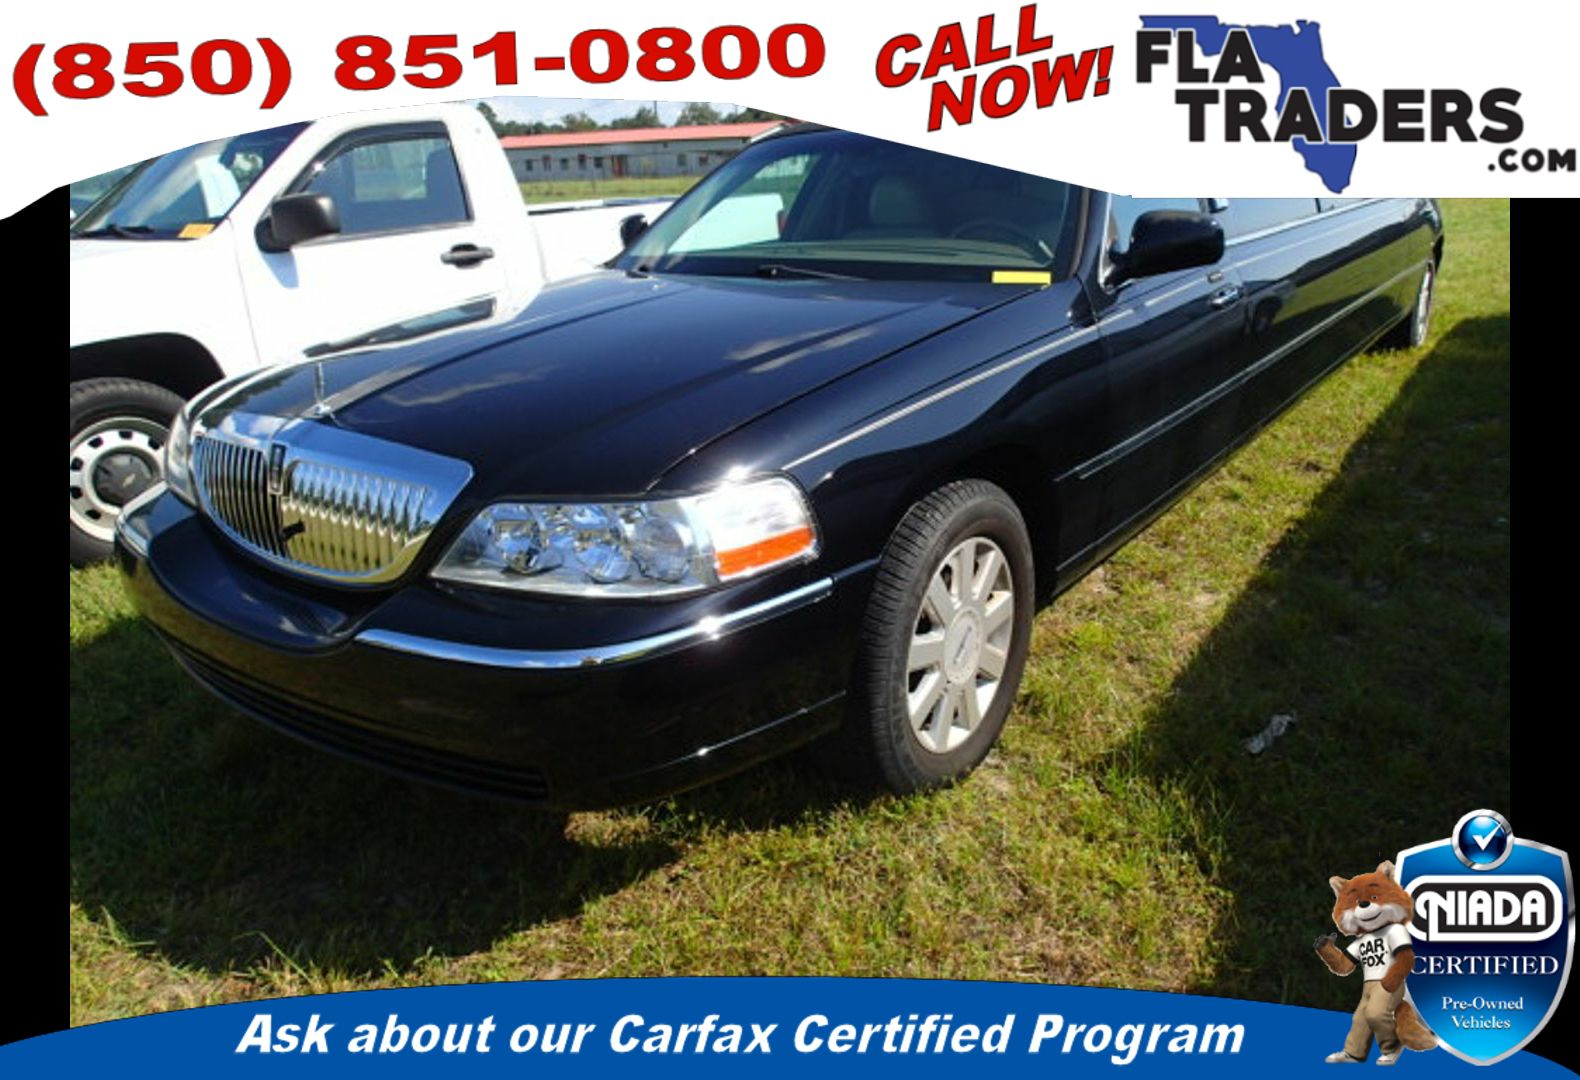 2005 LINCOLN TOWN CAR - Florida Traders Used Cars in Panama City FL ...